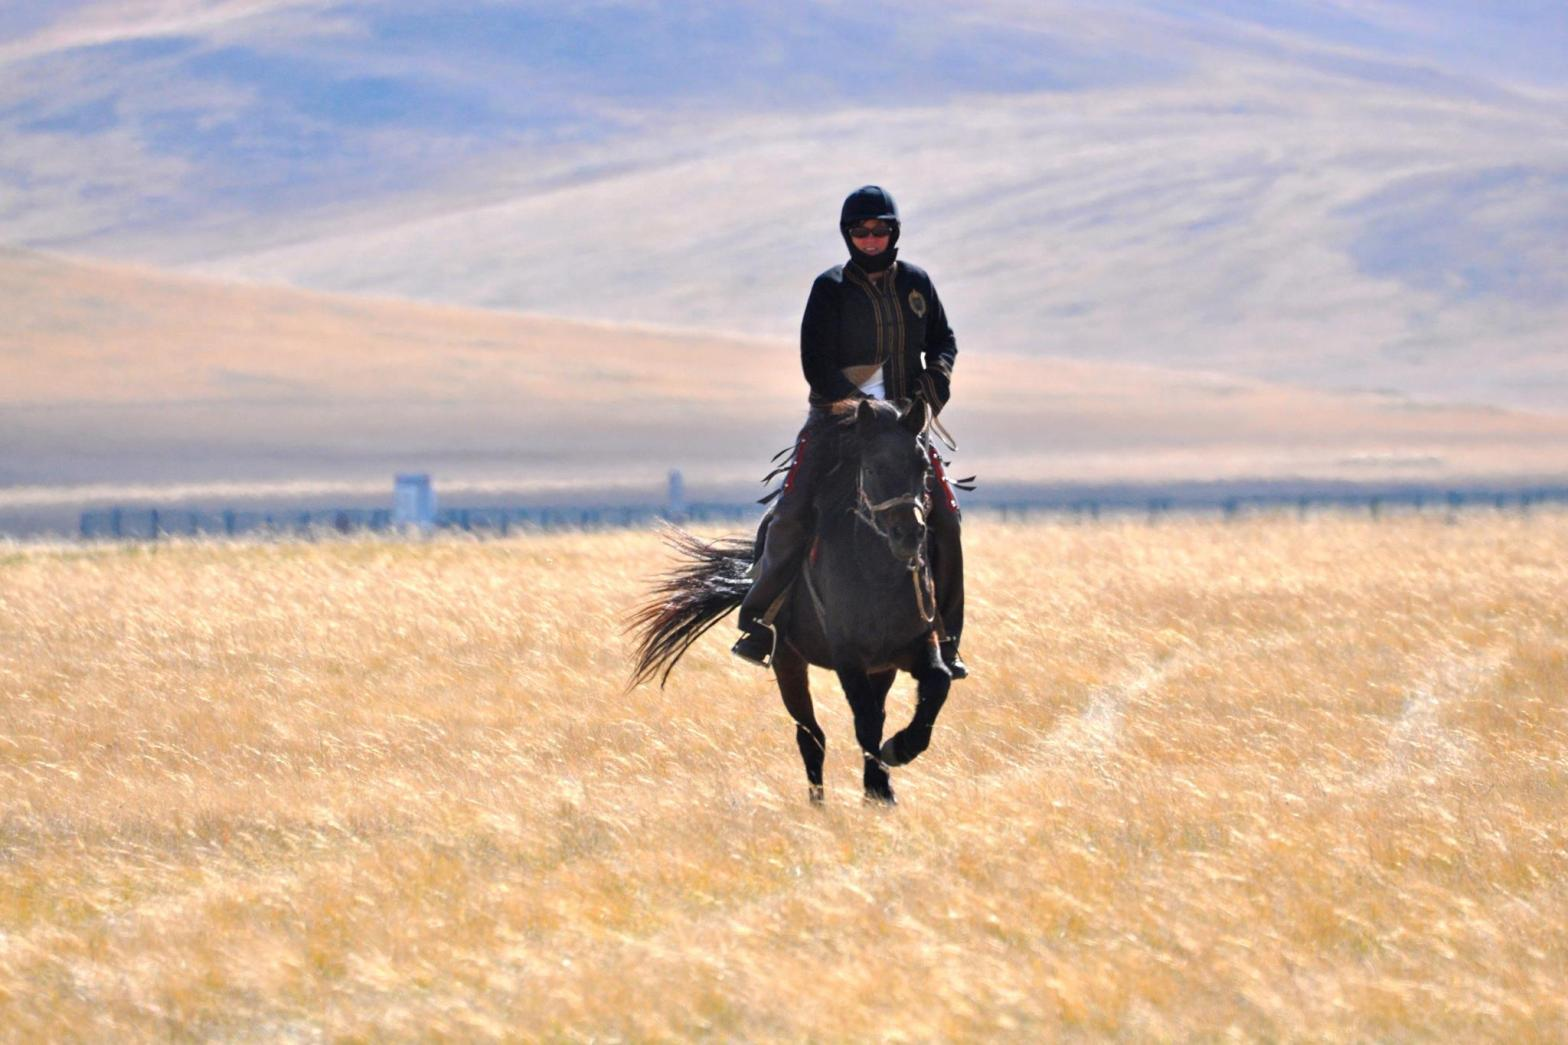 Julie learned to ride horses in Mongolia at the age of 50